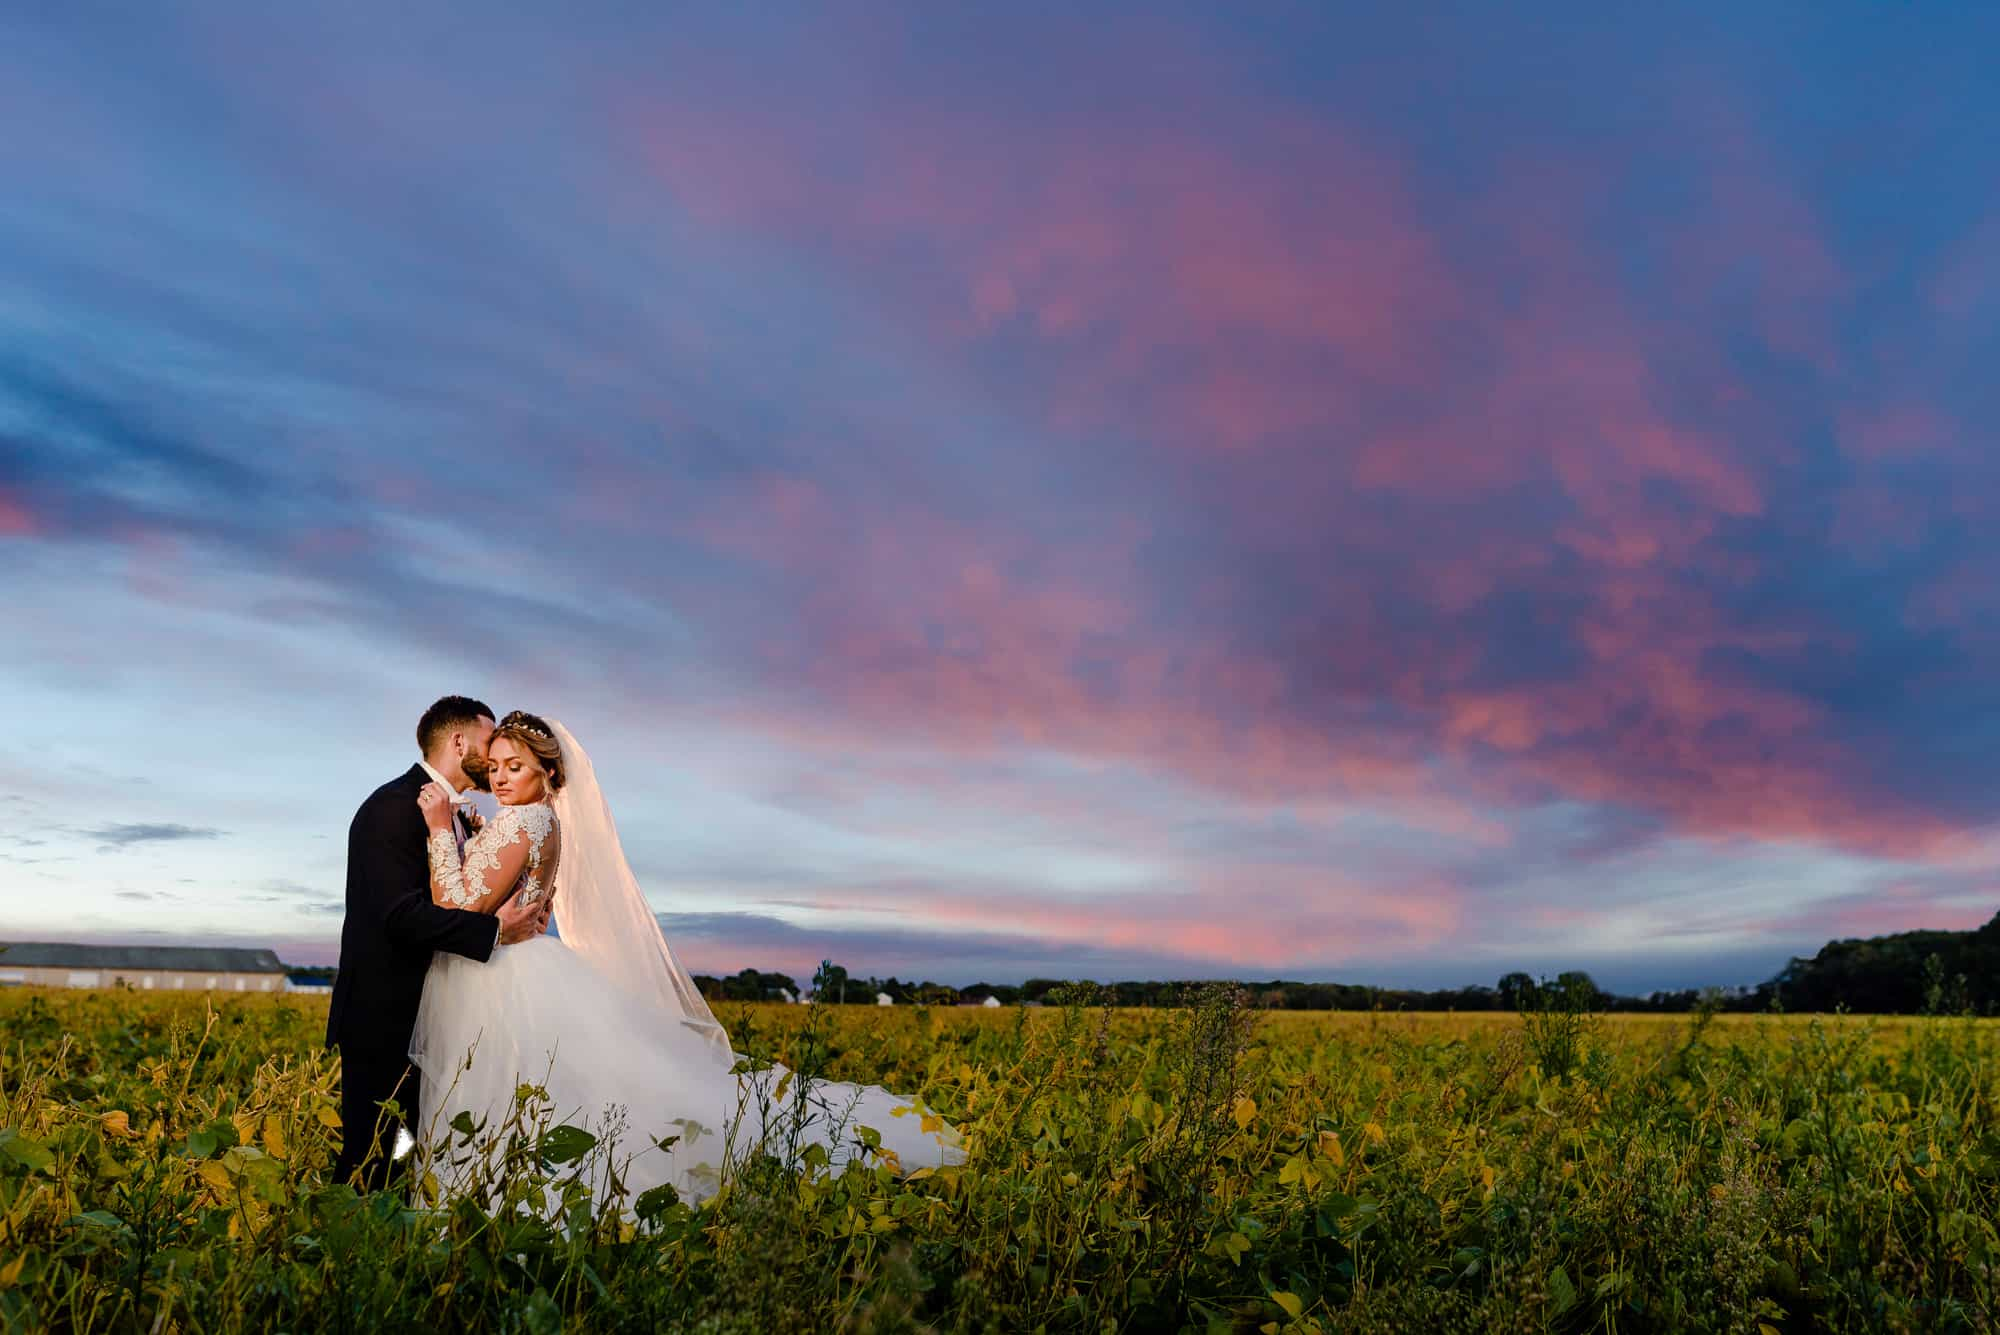 wedding dresses, bride and groom embracing at sunset